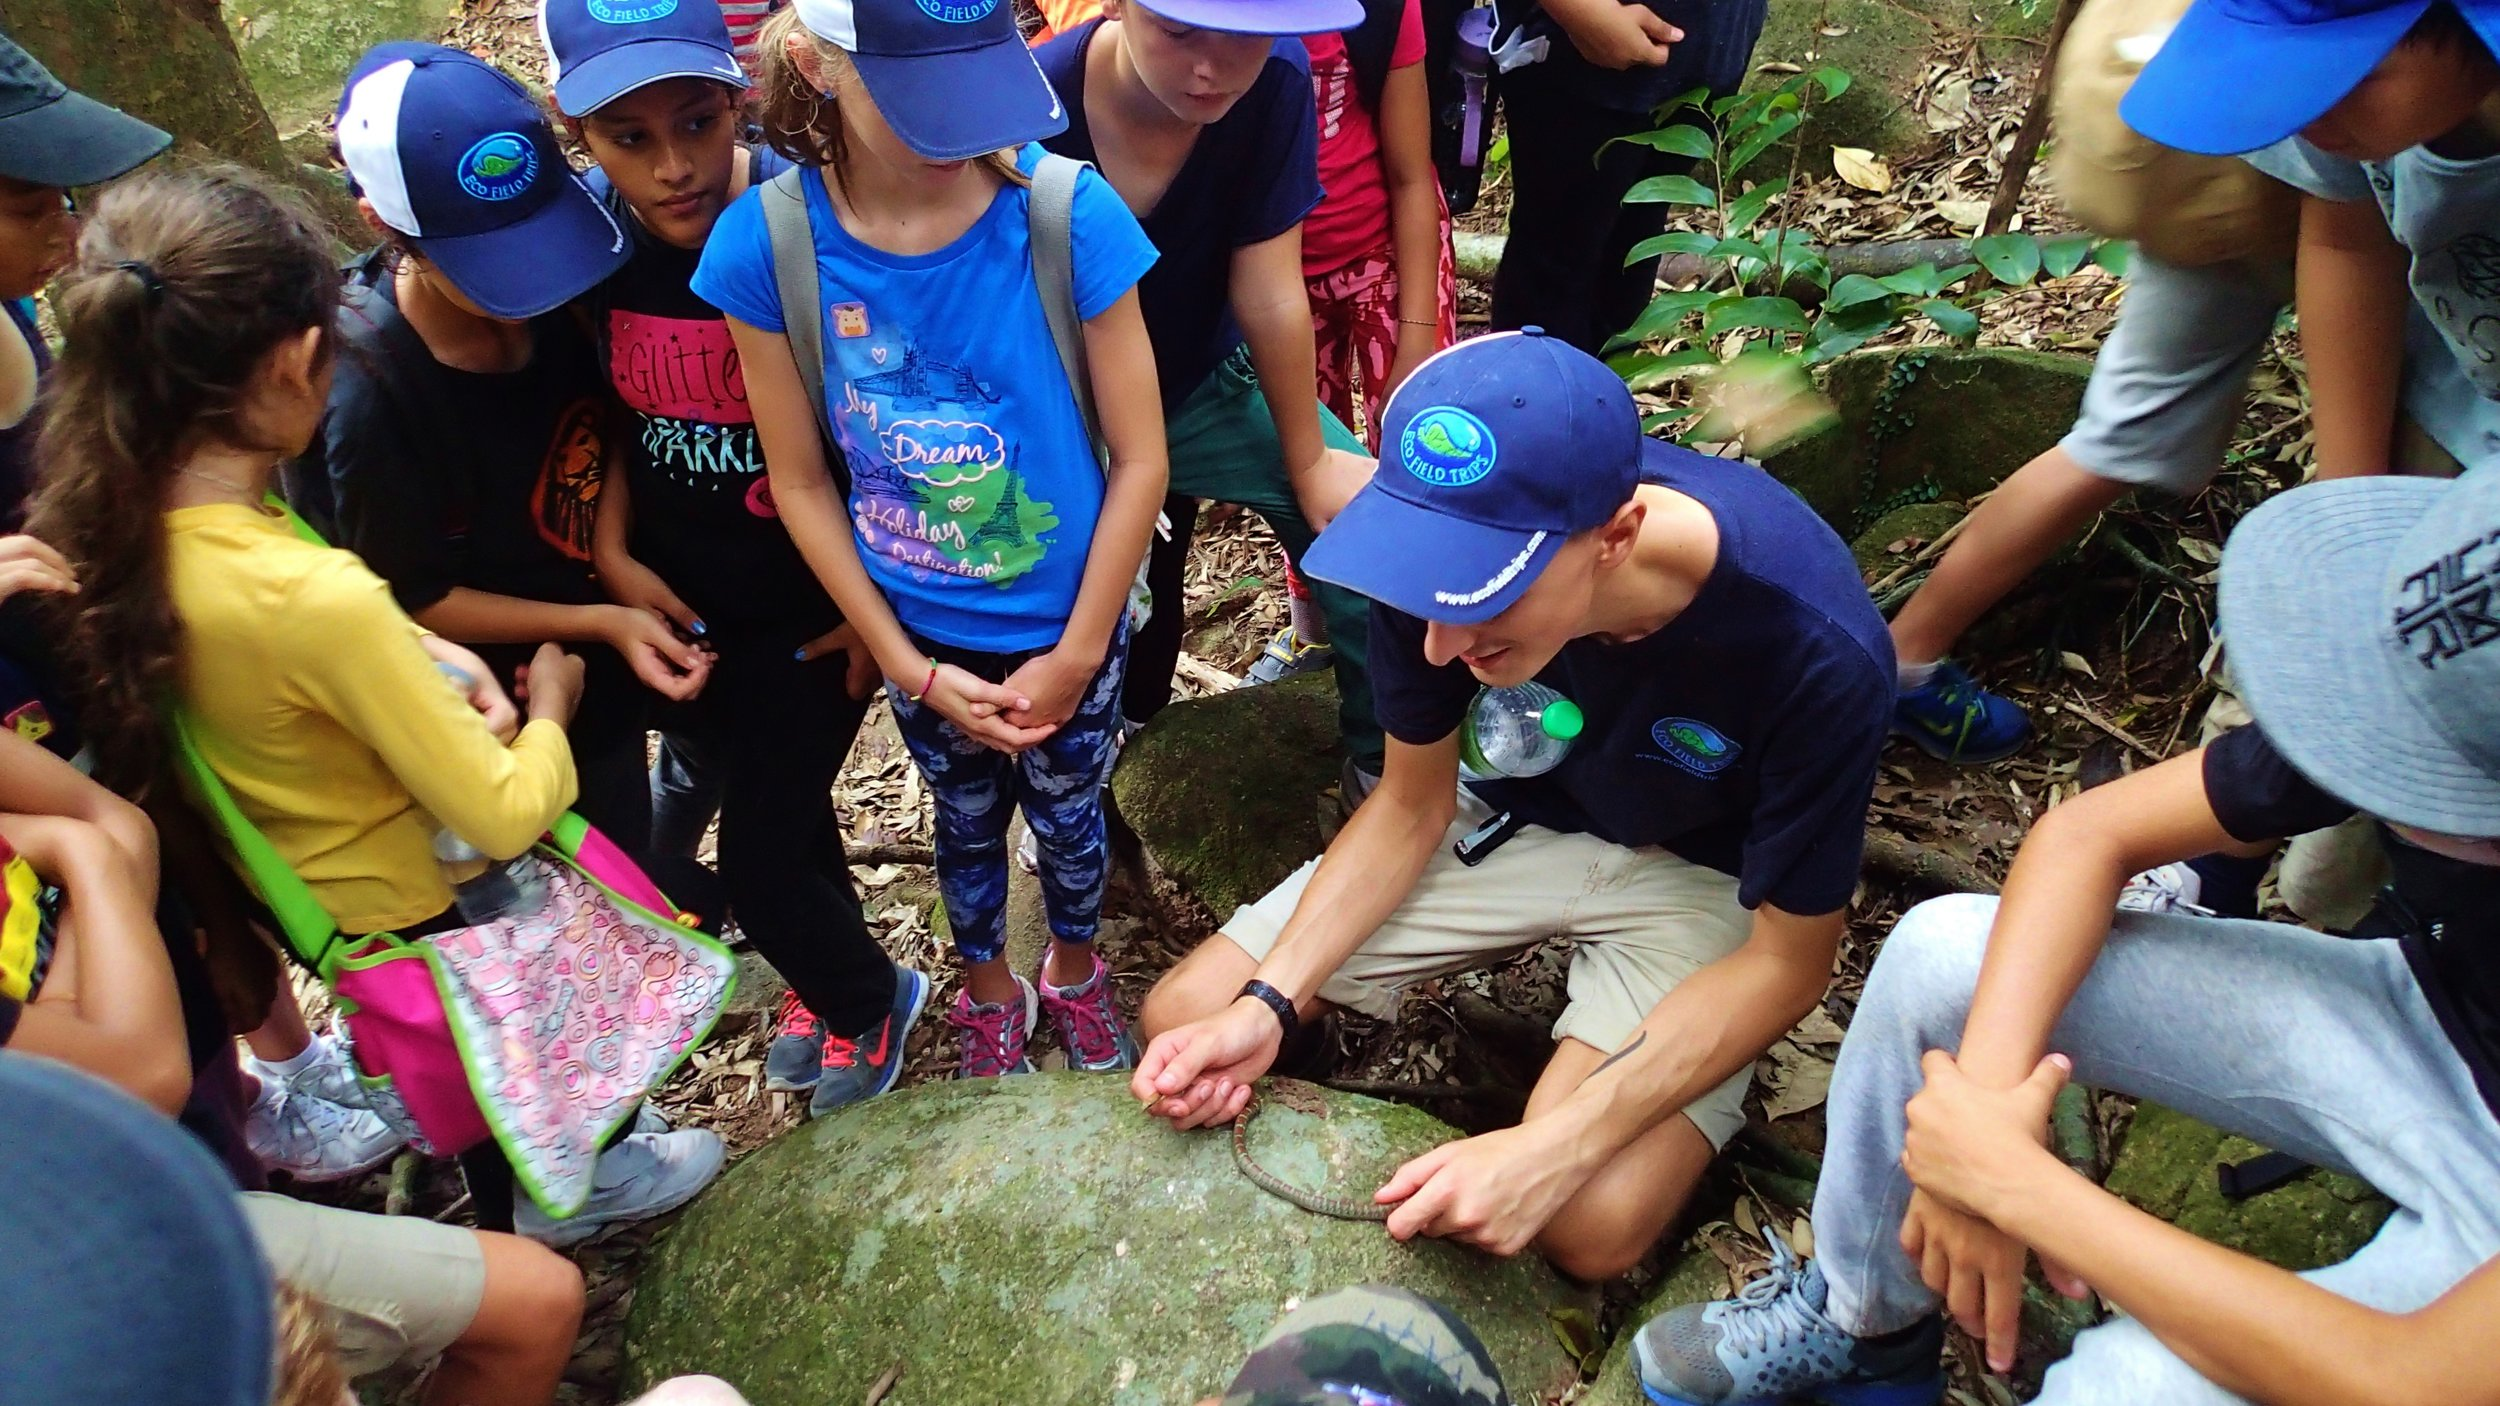 Tioman, Rainforest Walk, Animal Wildlife Interaction, Snake and Students, Connor.JPG